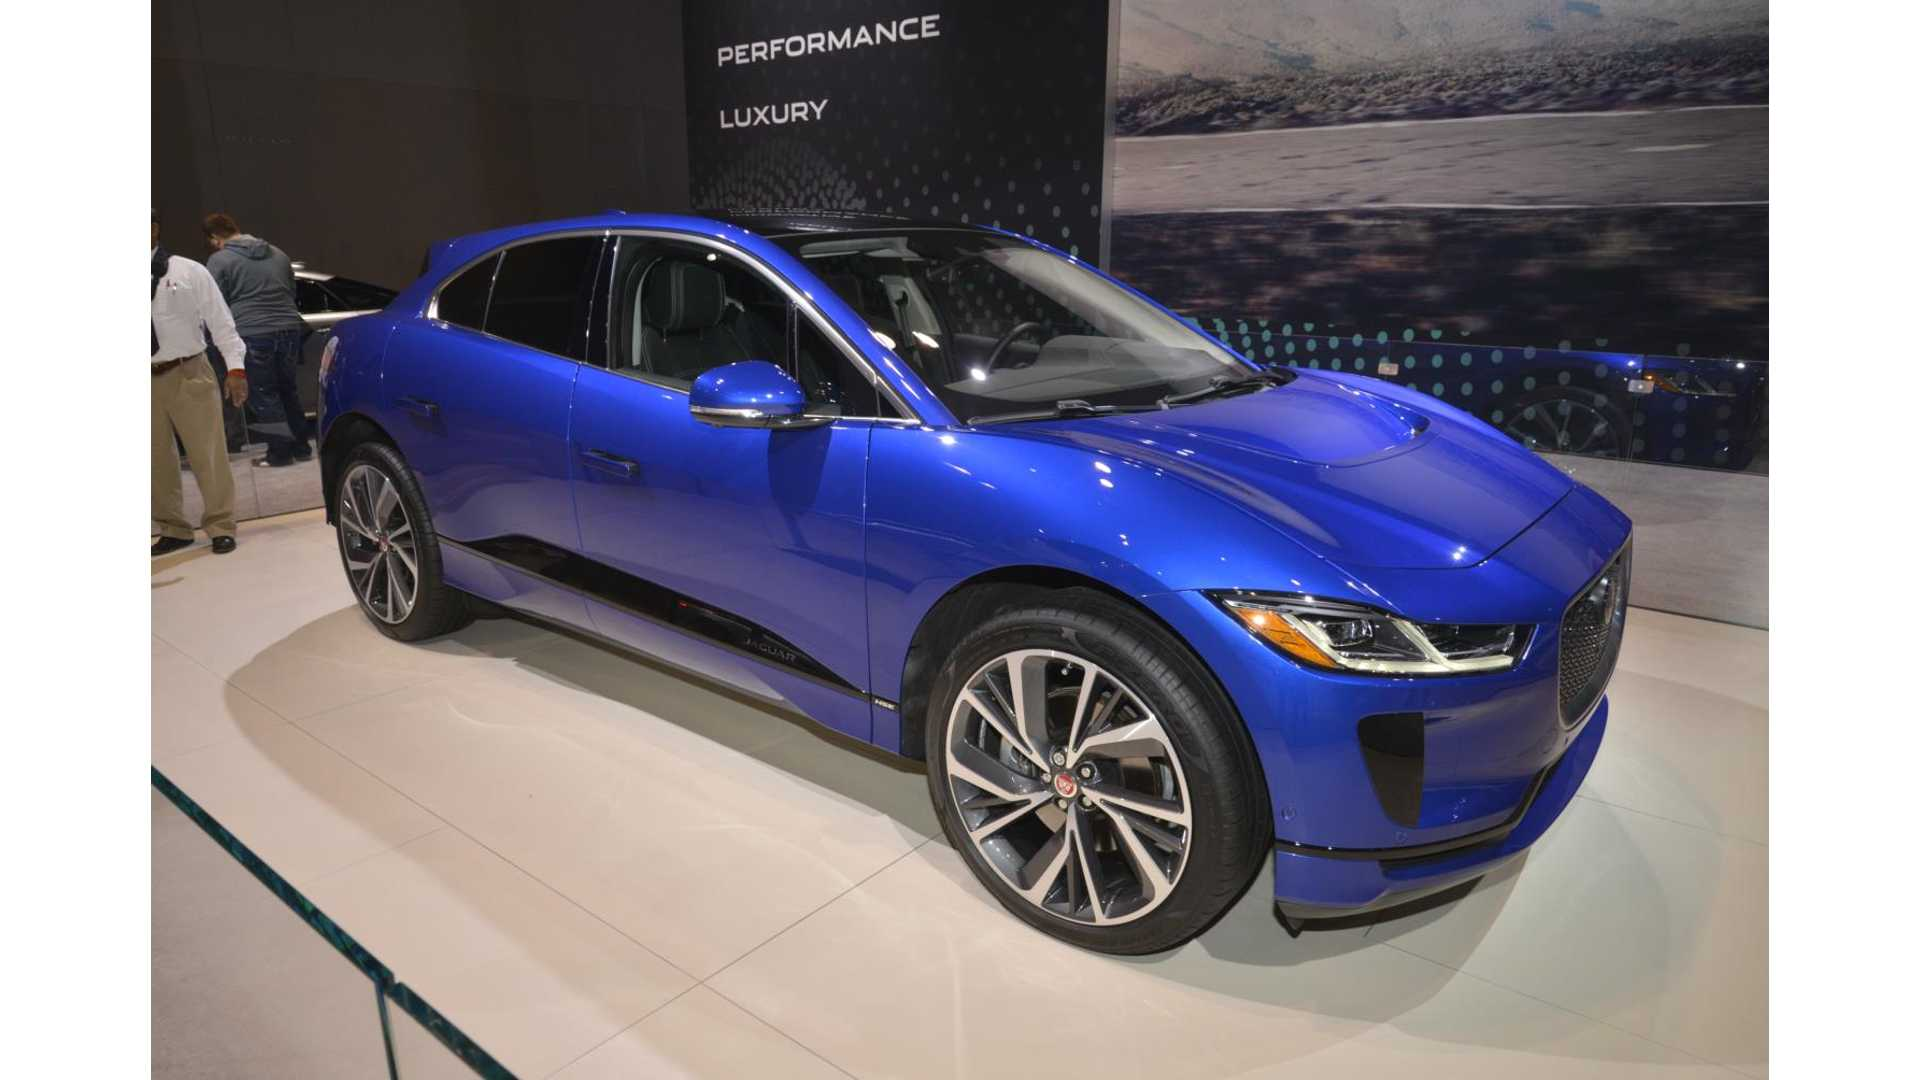 0 Apr Car >> Jaguar Offers 0 Apr On I Pace How Does It Compare To Tesla